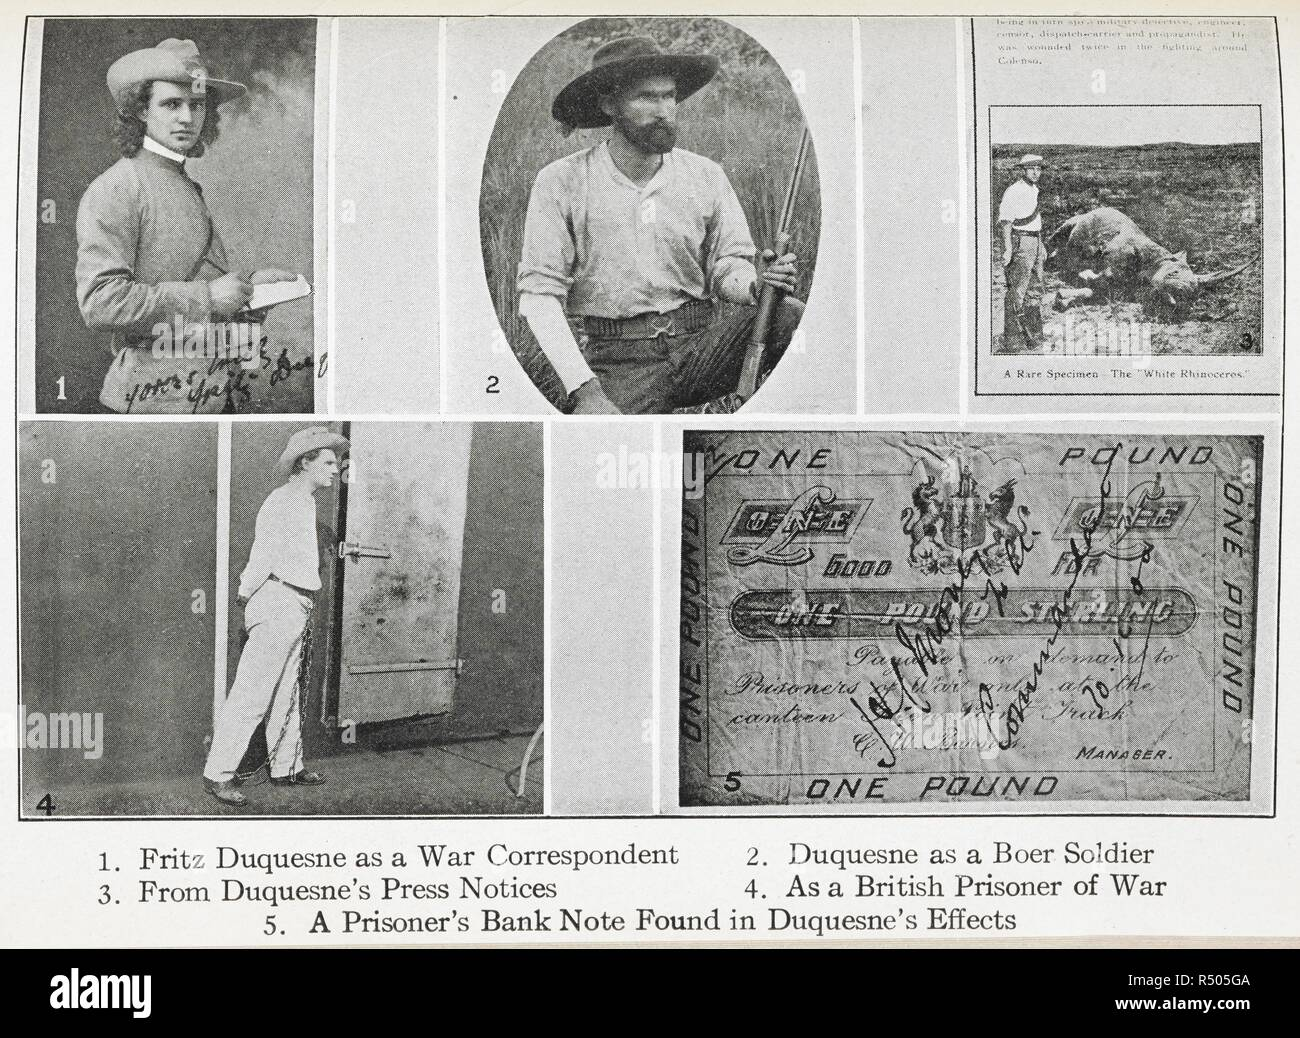 """Fritz Duquesne n various disguises. Frederick """"Fritz"""" Joubert Duquesne (21 September 1877 – 24 May 1956), sometimes Du Quesne, was a South African Boer soldier, prisoner of war, big game hunter, journalist, war correspondent, stockbroker, saboteur, spy, and adventurer whose hatred for the British (due to their treatment of Boer women and children) caused him to volunteer to spy for Germany during both World Wars. As a Boer spy he was known as the 'Black Panther', but he is also known as 'the man who killed Kitchener', since he claimed to have sabotaged and sunk HMS Hampshire, on which Lo - Stock Image"""